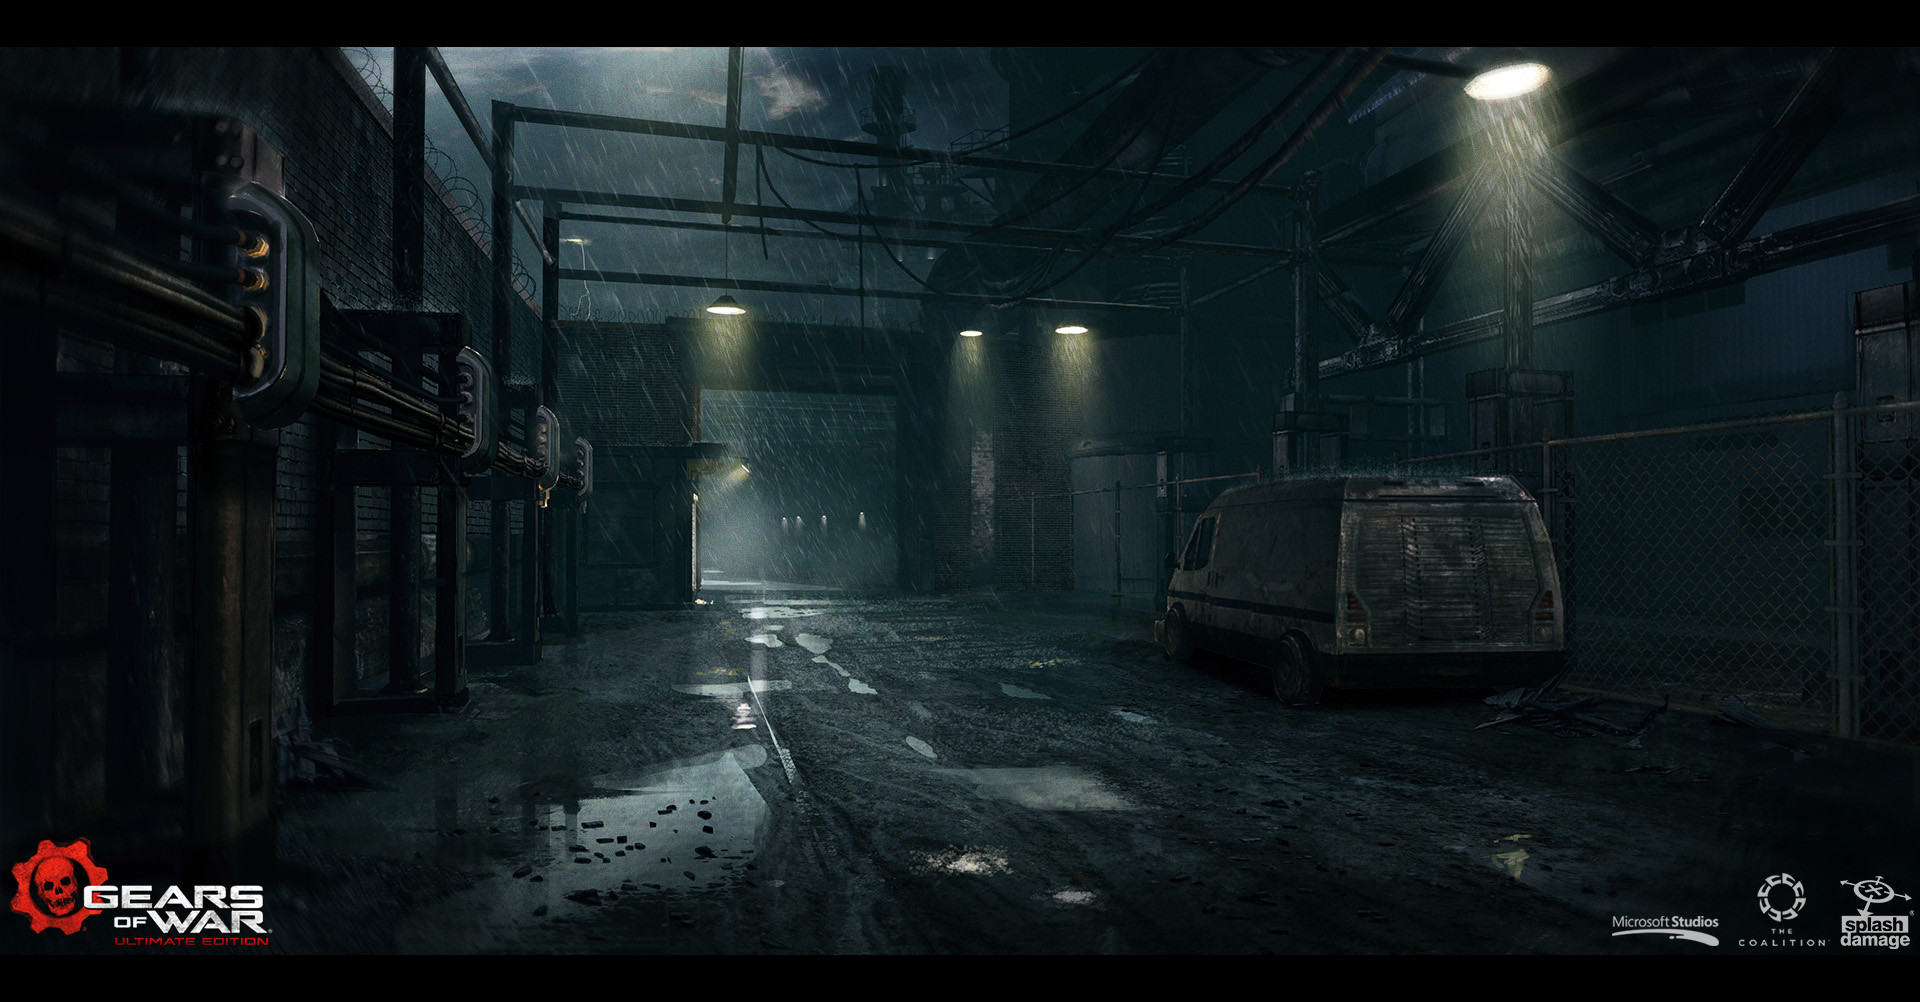 Gears of War - Concept Art